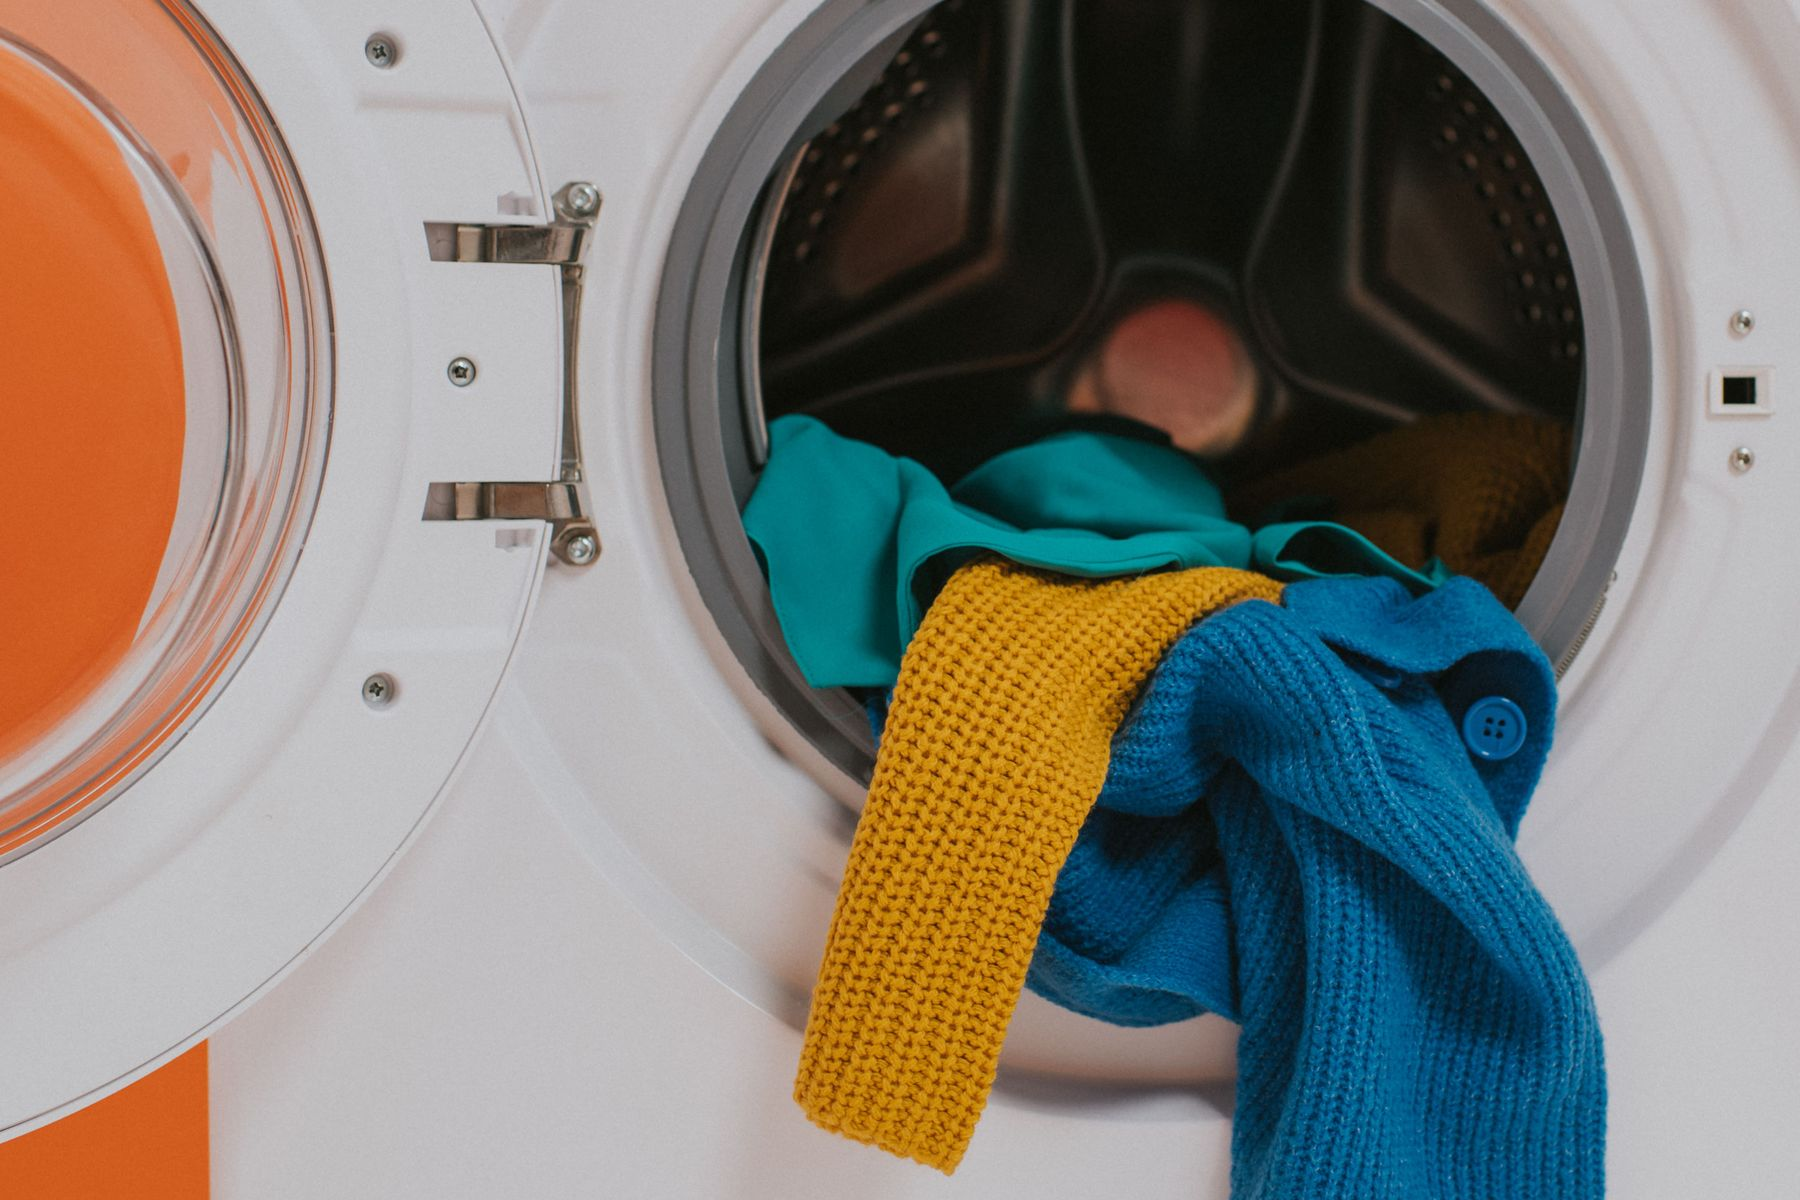 colorful clothes inside the washing machine